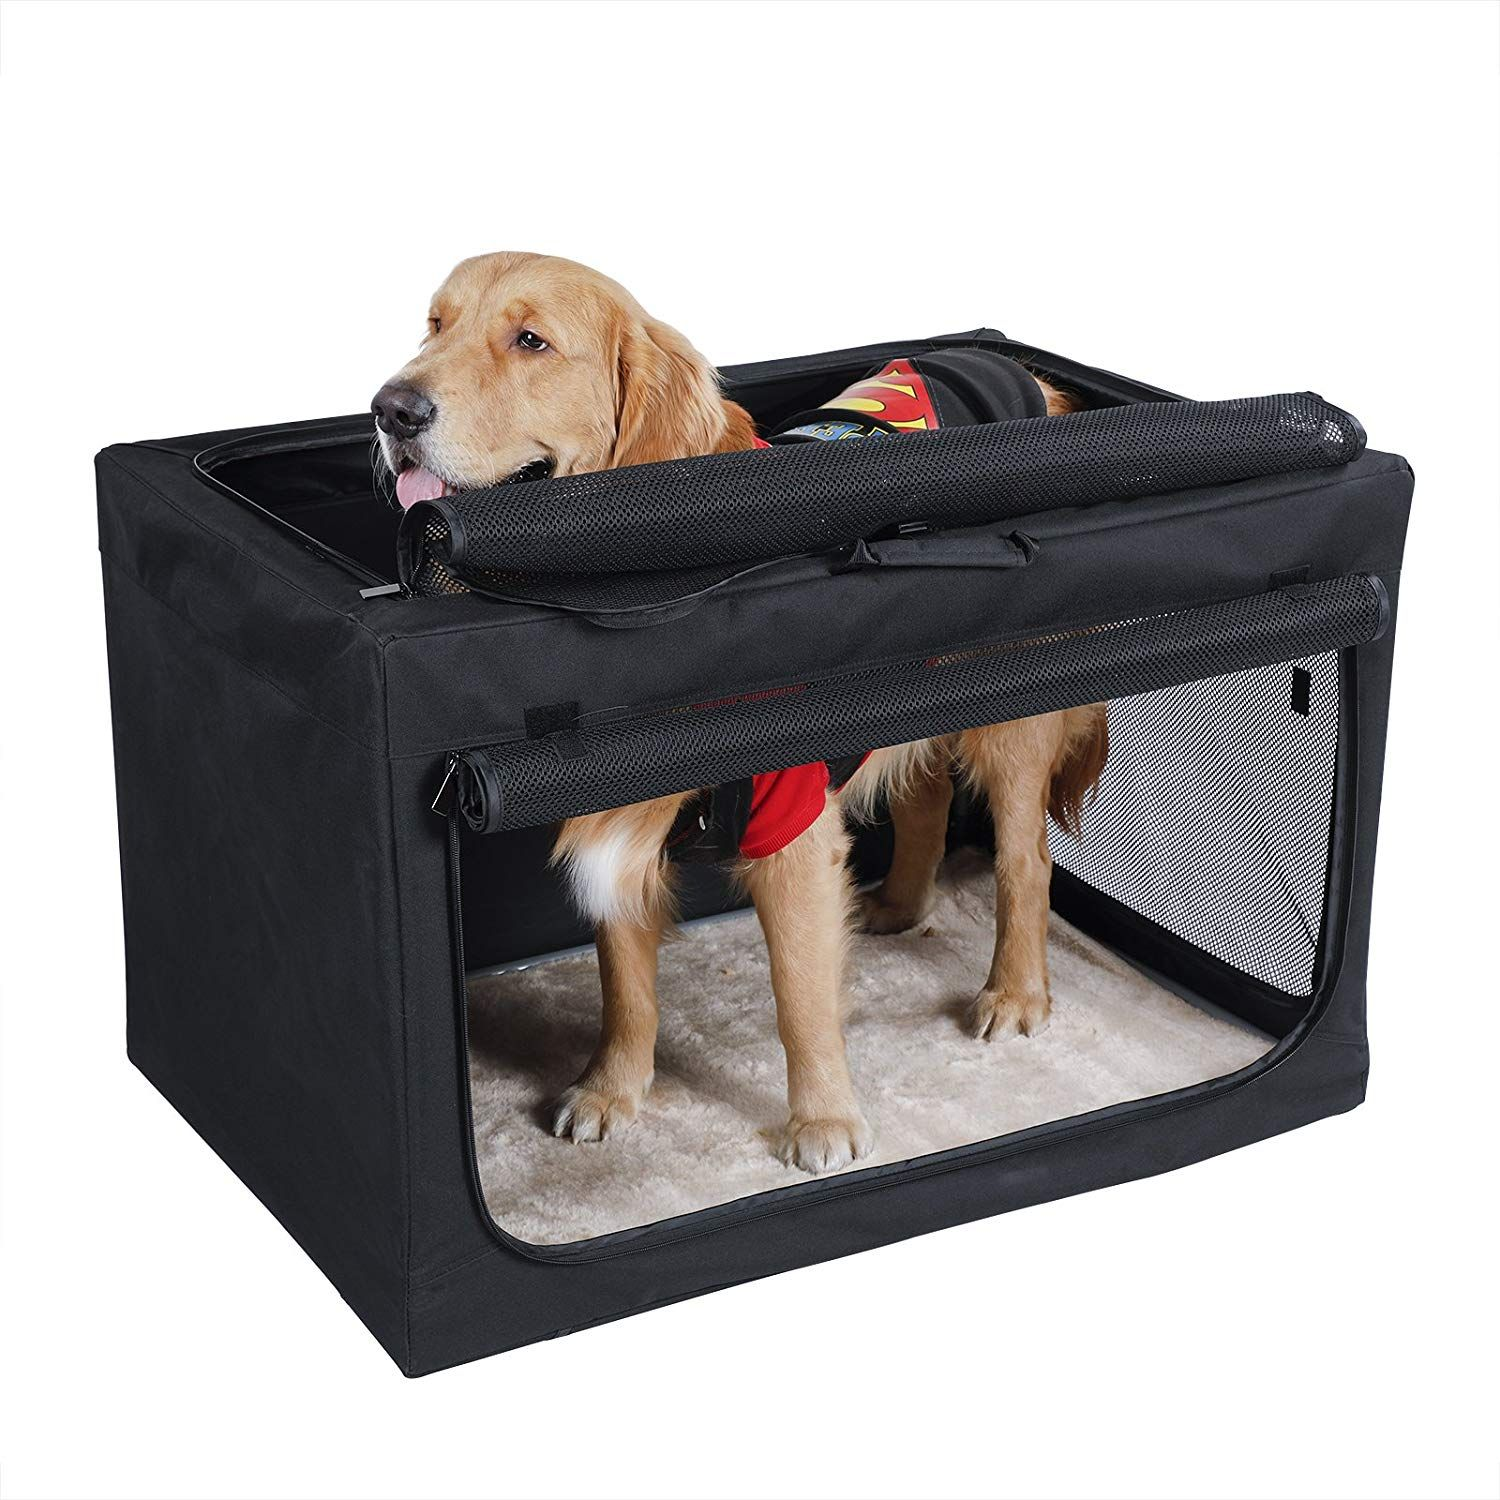 Petsfit Indoor Outdoor Soft Portable Foldable Travel Pet Dog Home Crate Cage Sincerely Hope You Do Love The Pic Dog Crate Soft Dog Crates Large Dog Crate